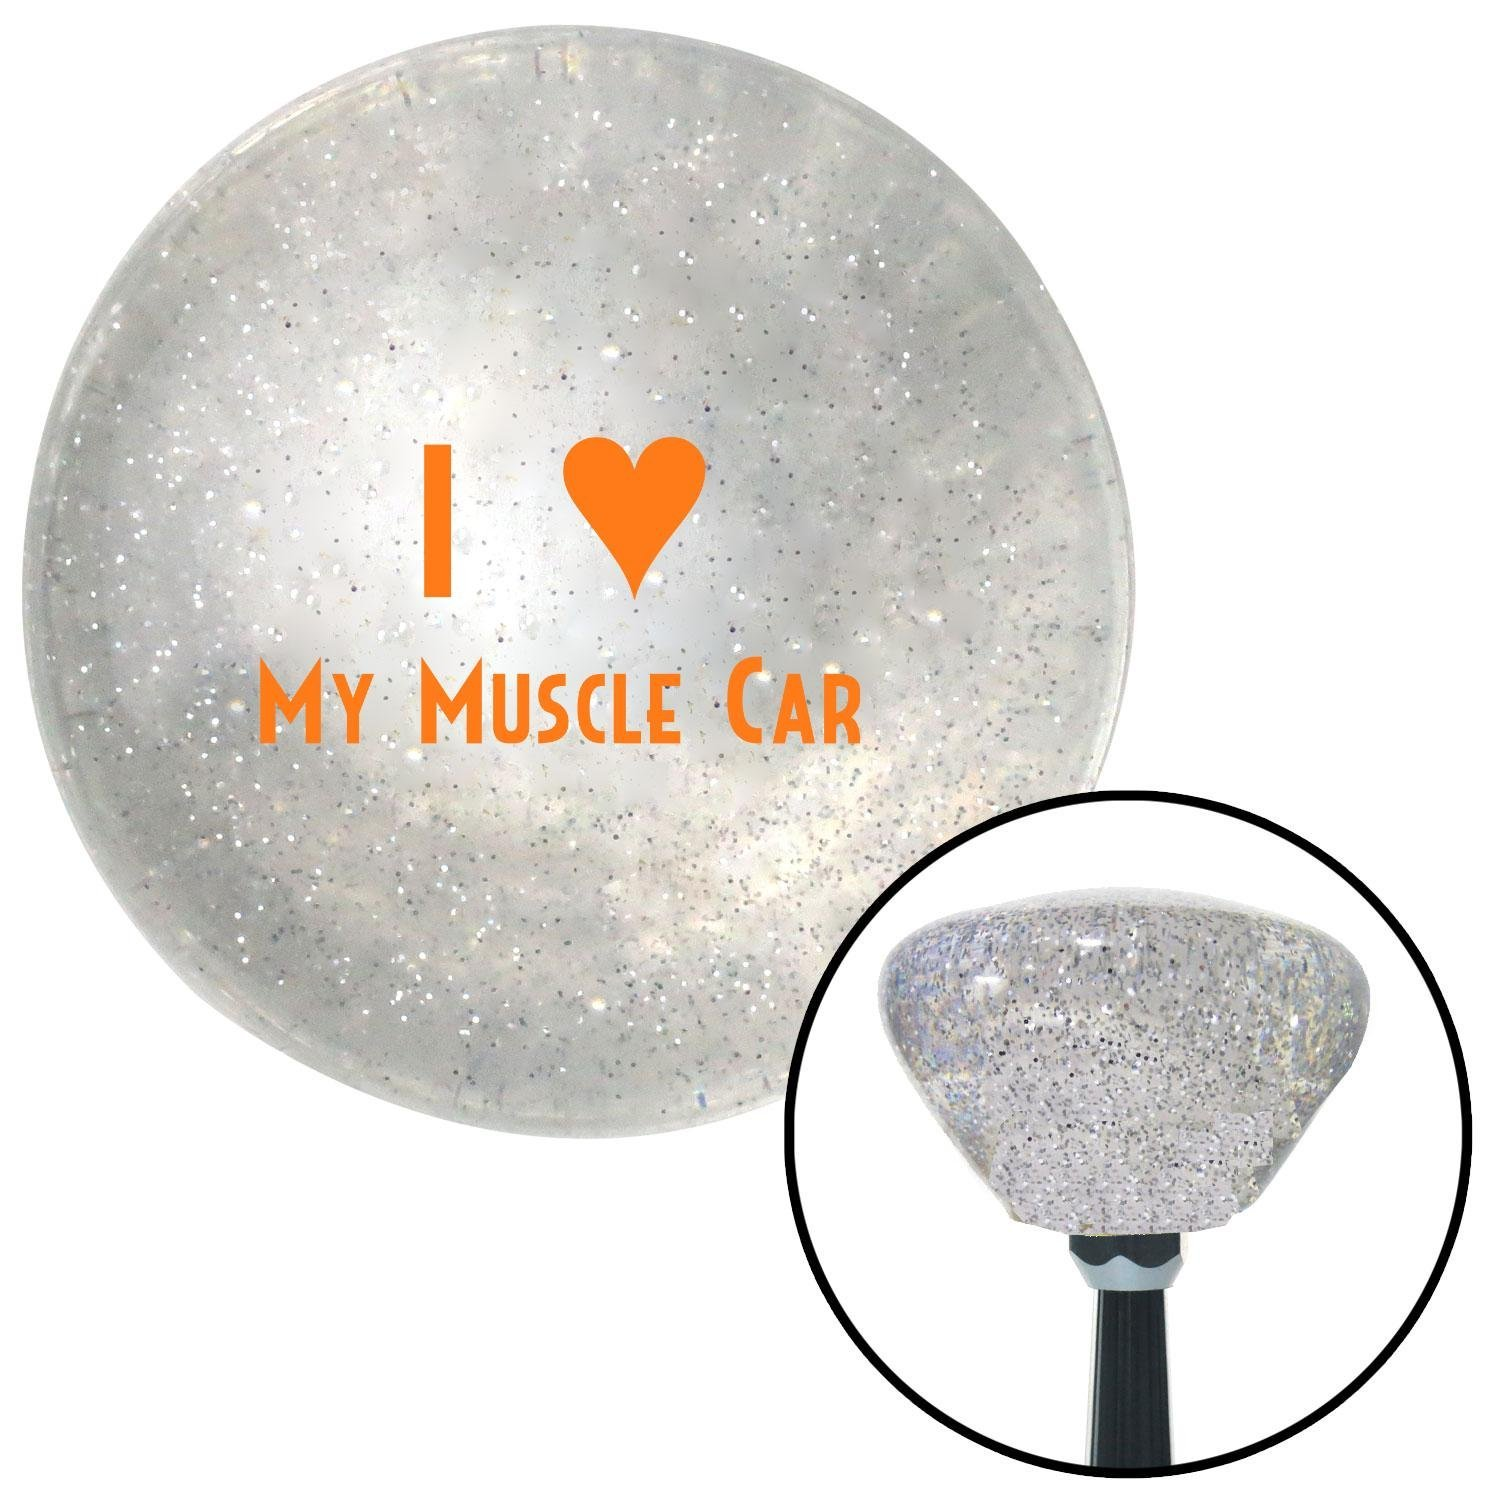 Orange I 3 My Muscle CAR American Shifter 161312 Clear Retro Metal Flake Shift Knob with M16 x 1.5 Insert